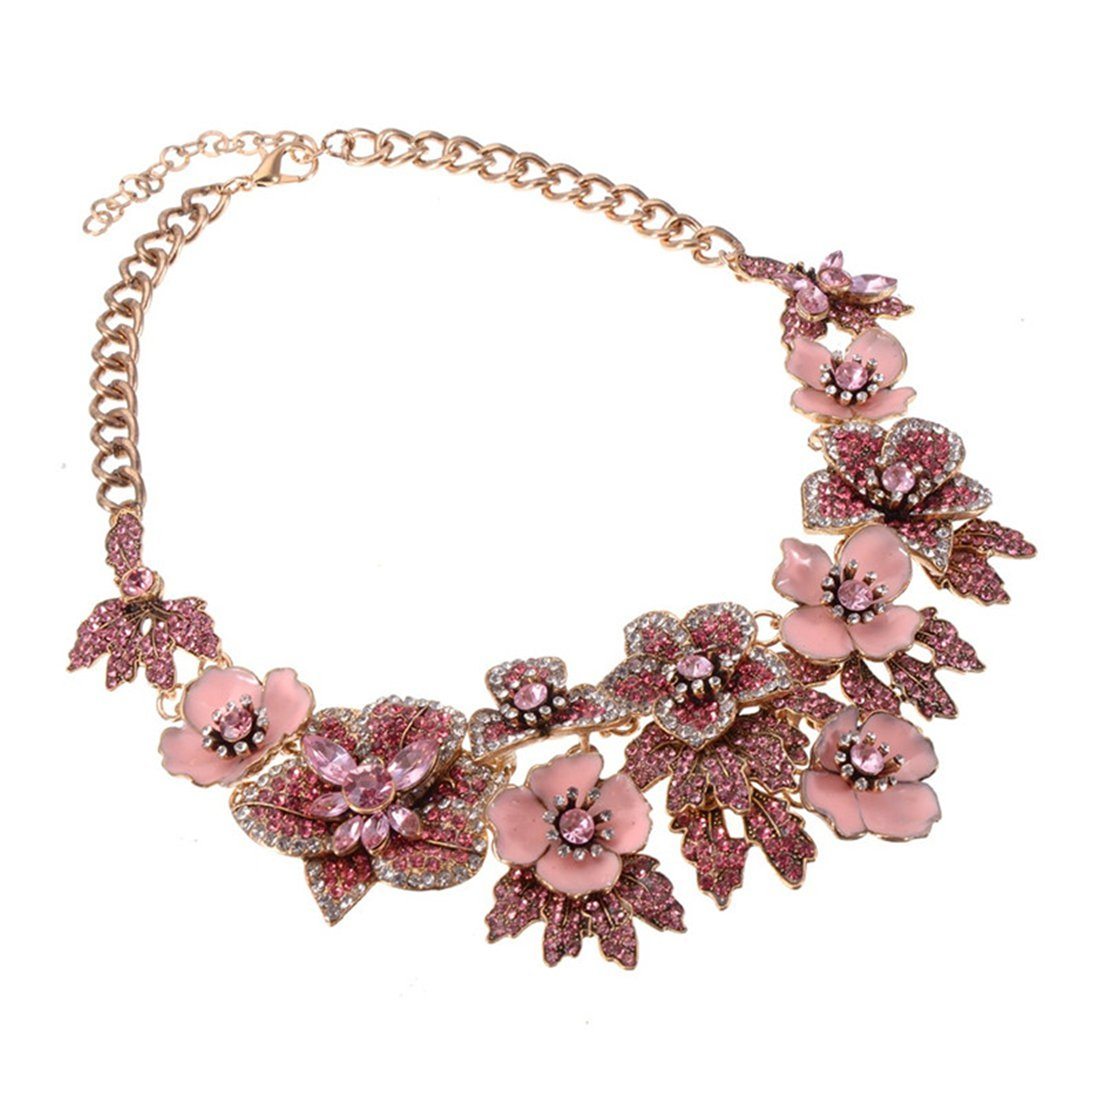 Holylove Luxury Statement Necklace for Women Chunky Choker Collar Pink Enamel Gold Chain Flower Wedding Party Formal Fashion Wear 1 pc with Gift Box - HLN67 Pink by Holylove